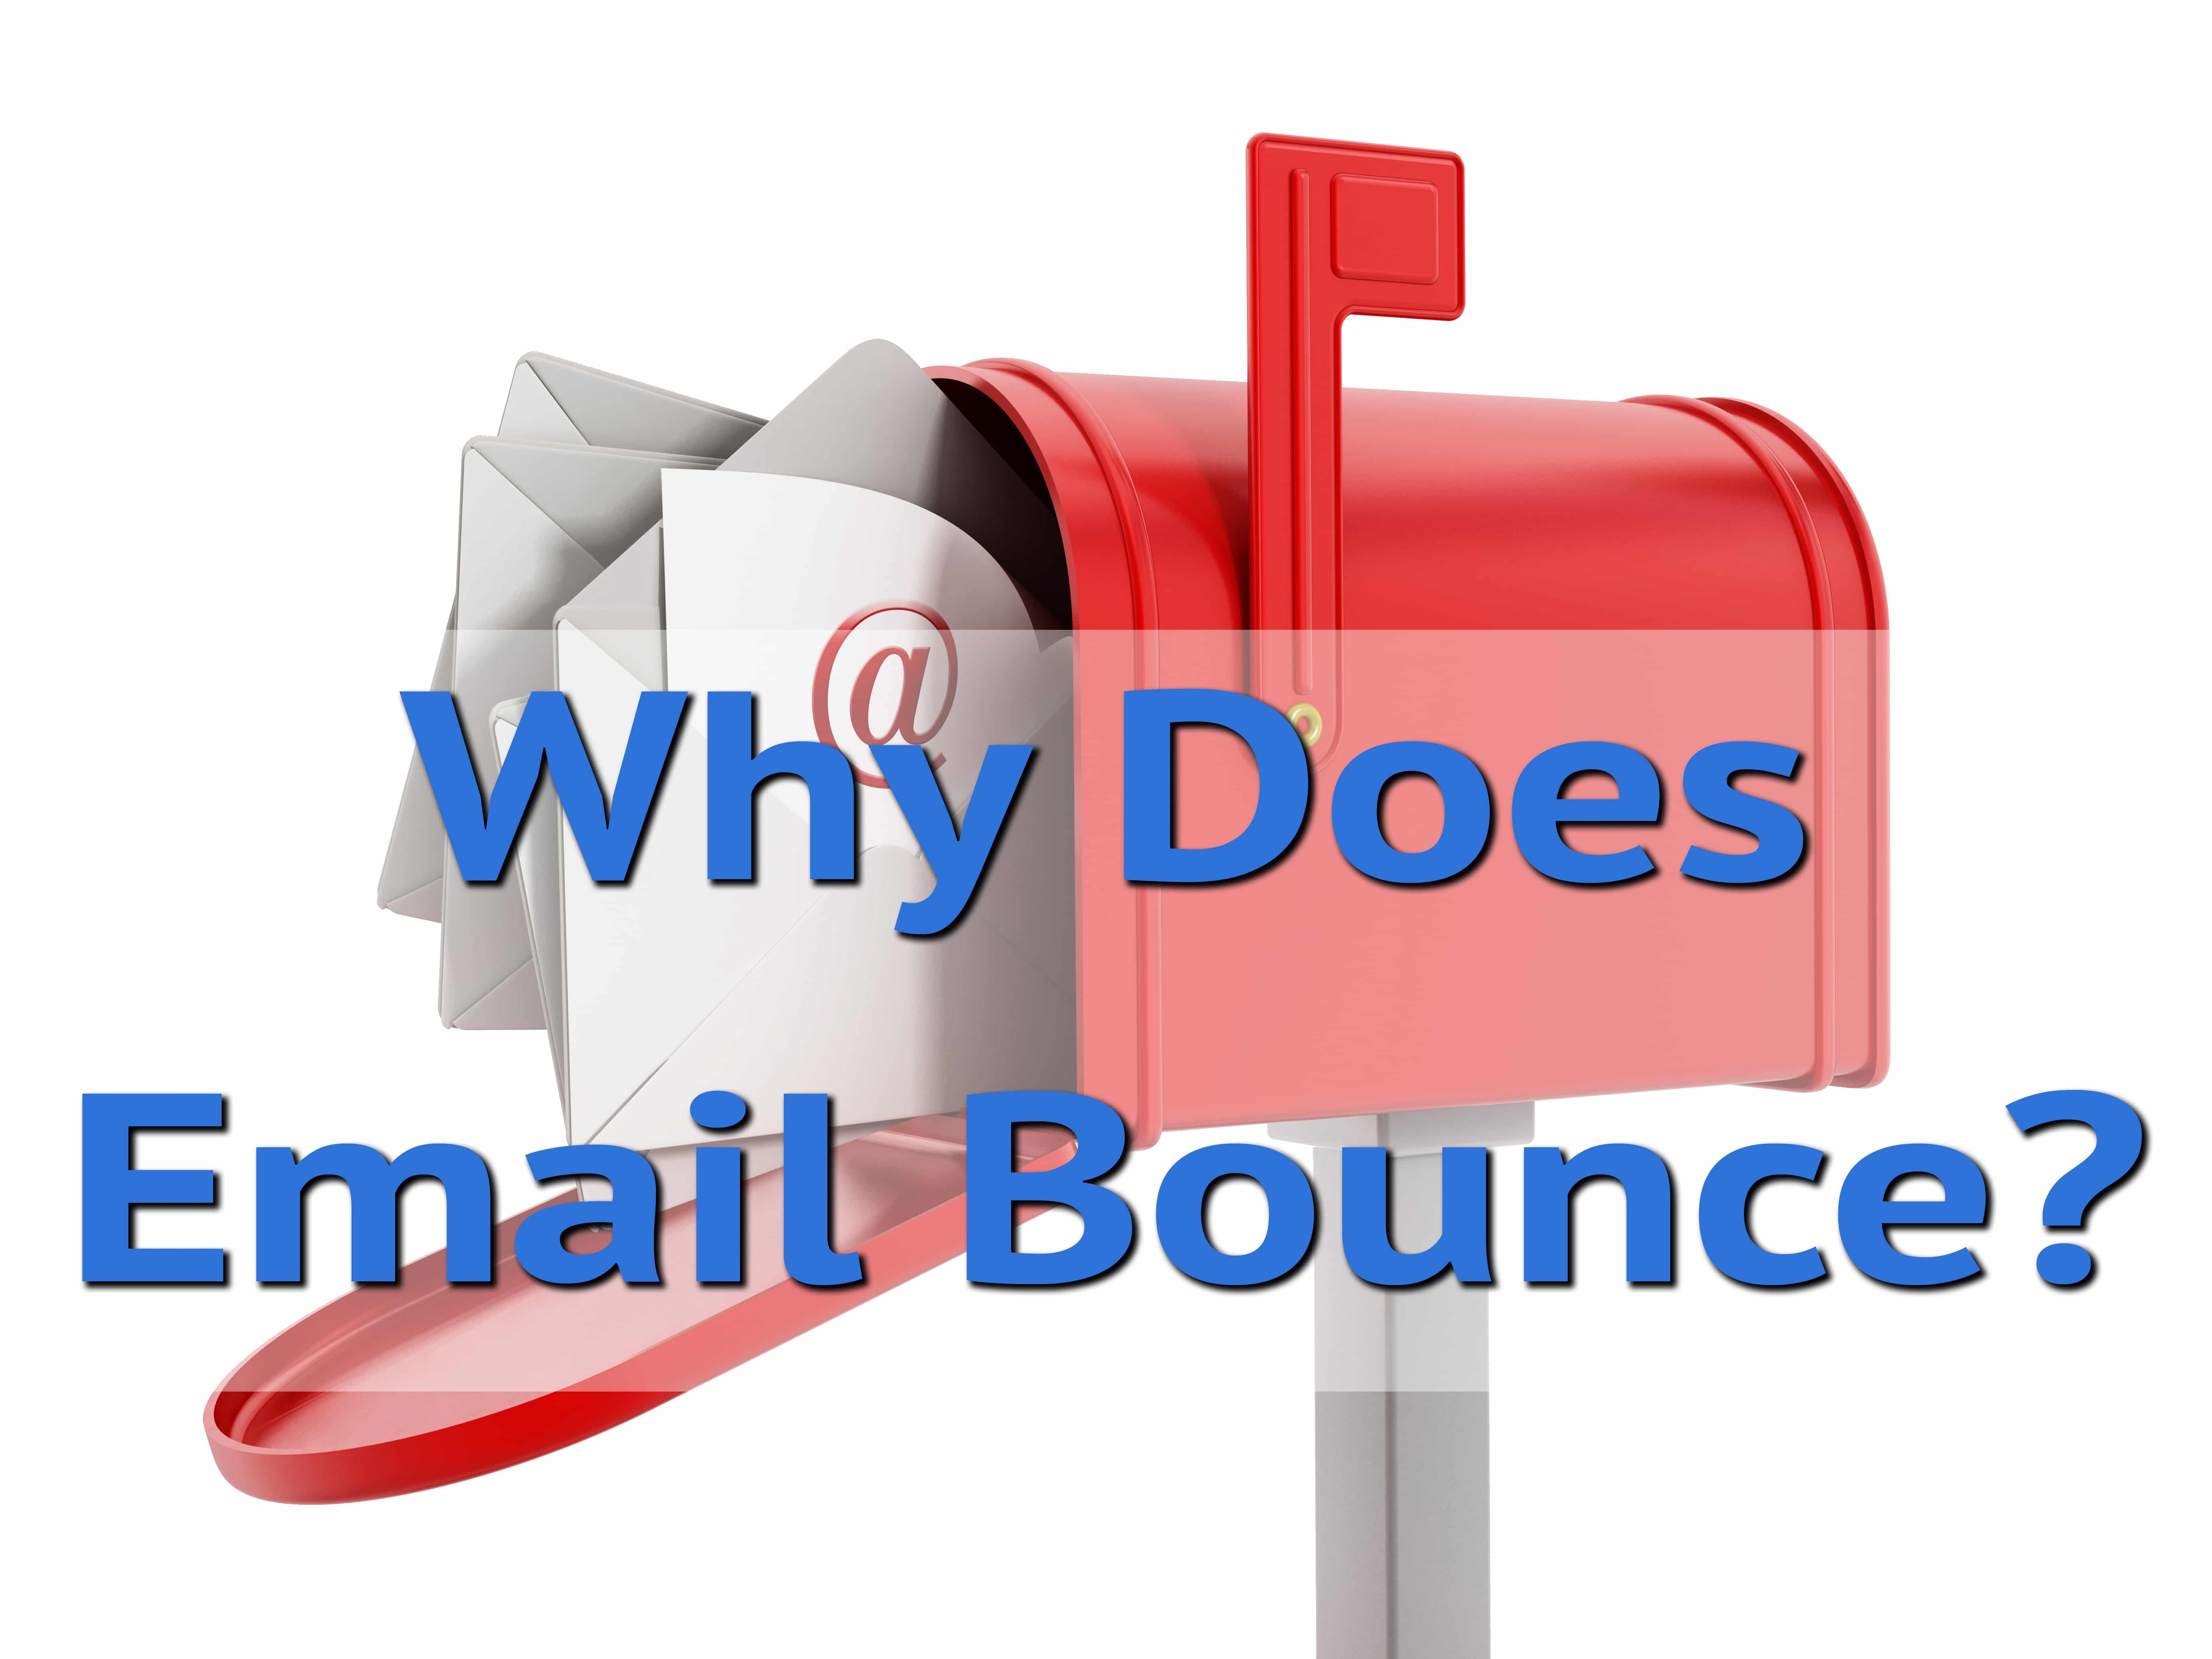 Why Does Email Bounce? - Ask Leo!